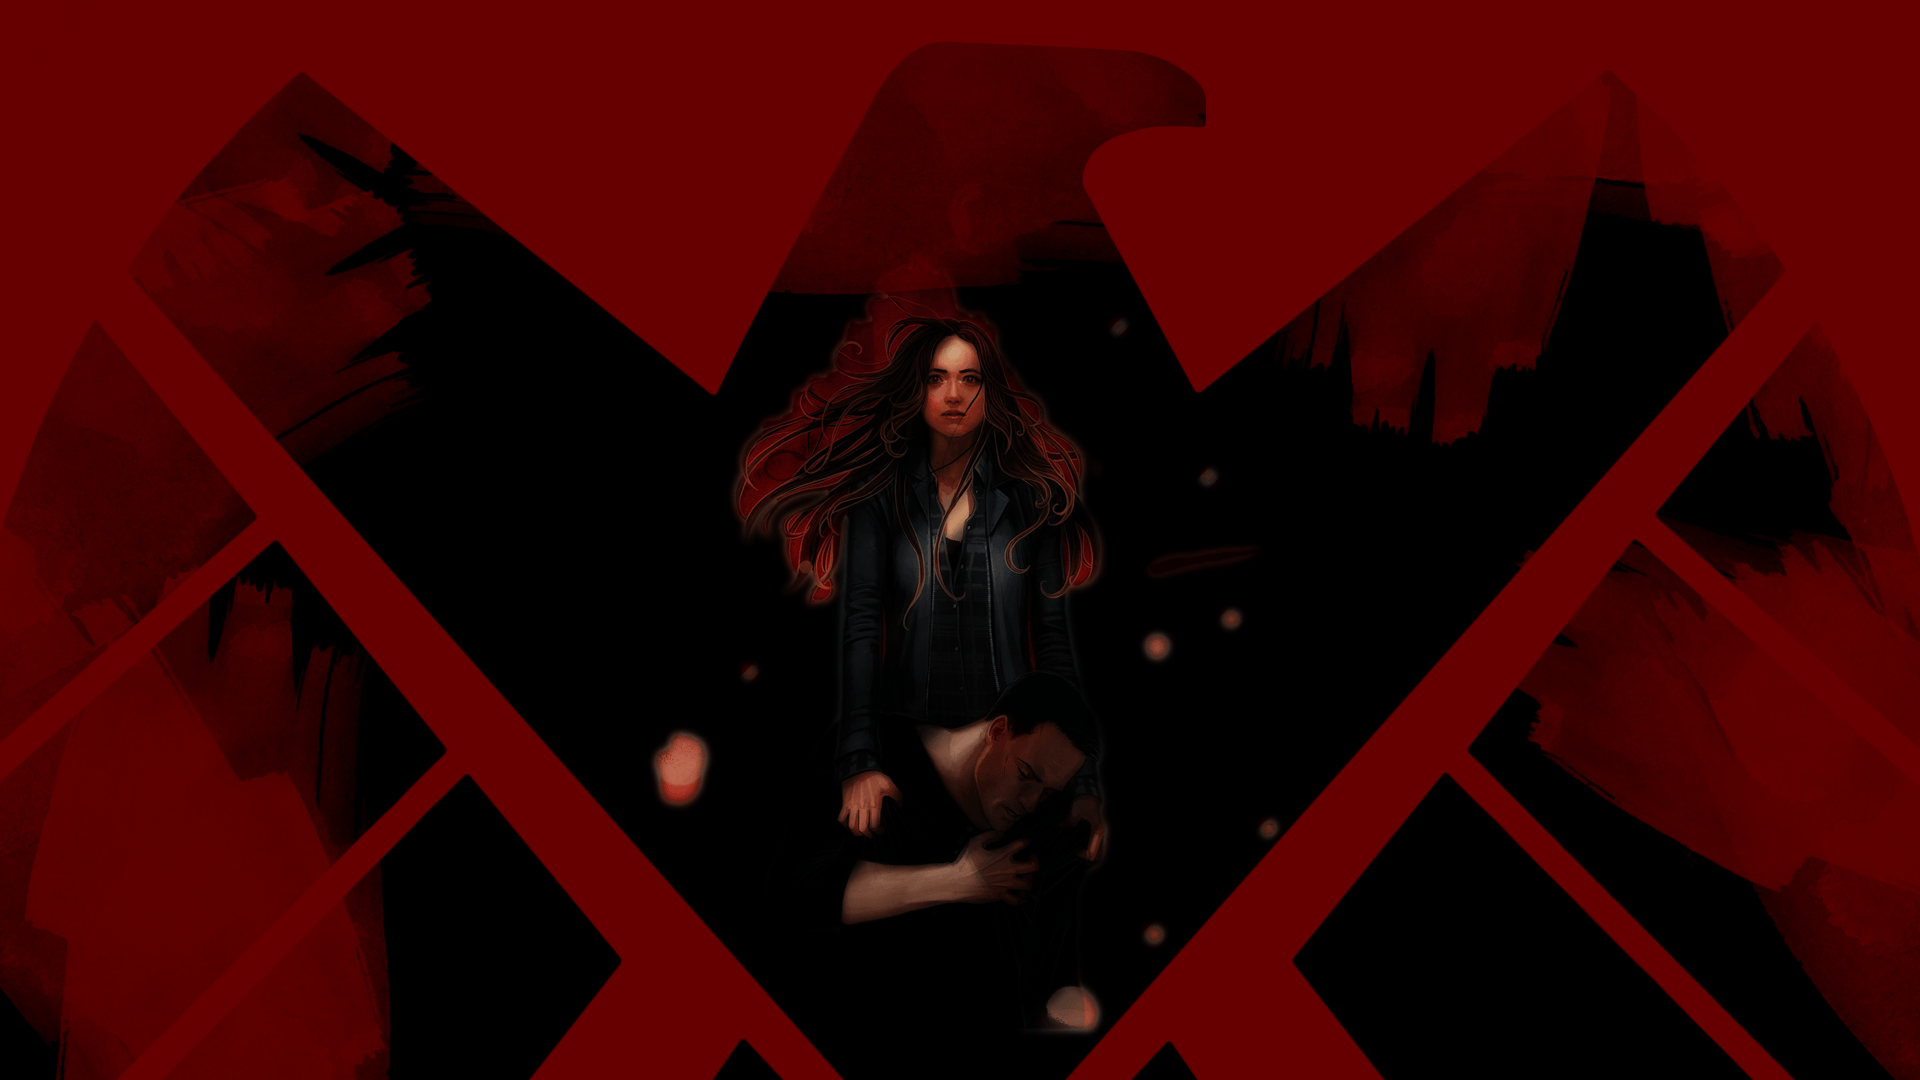 Agents Of S.H.I.E.L.D Background 9